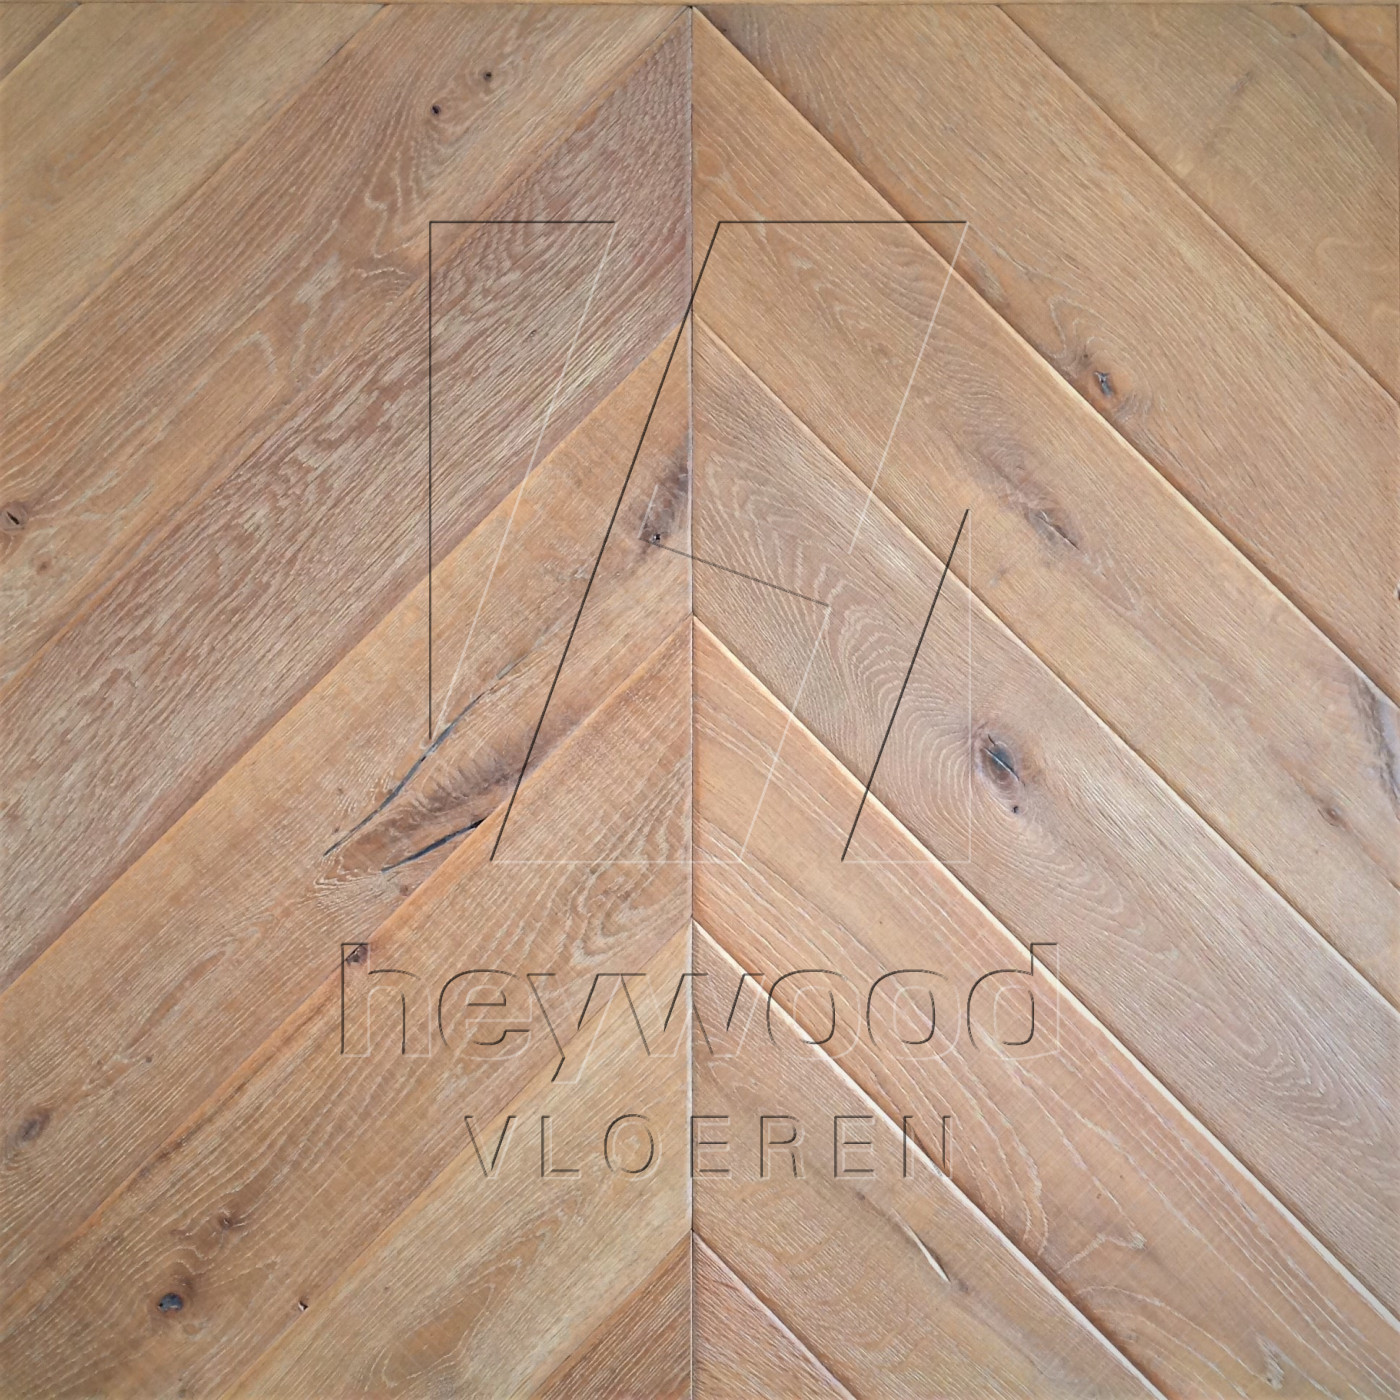 Knotting Hill Chevron 'Vanoise' in Chevron of Pattern & Panel Floors